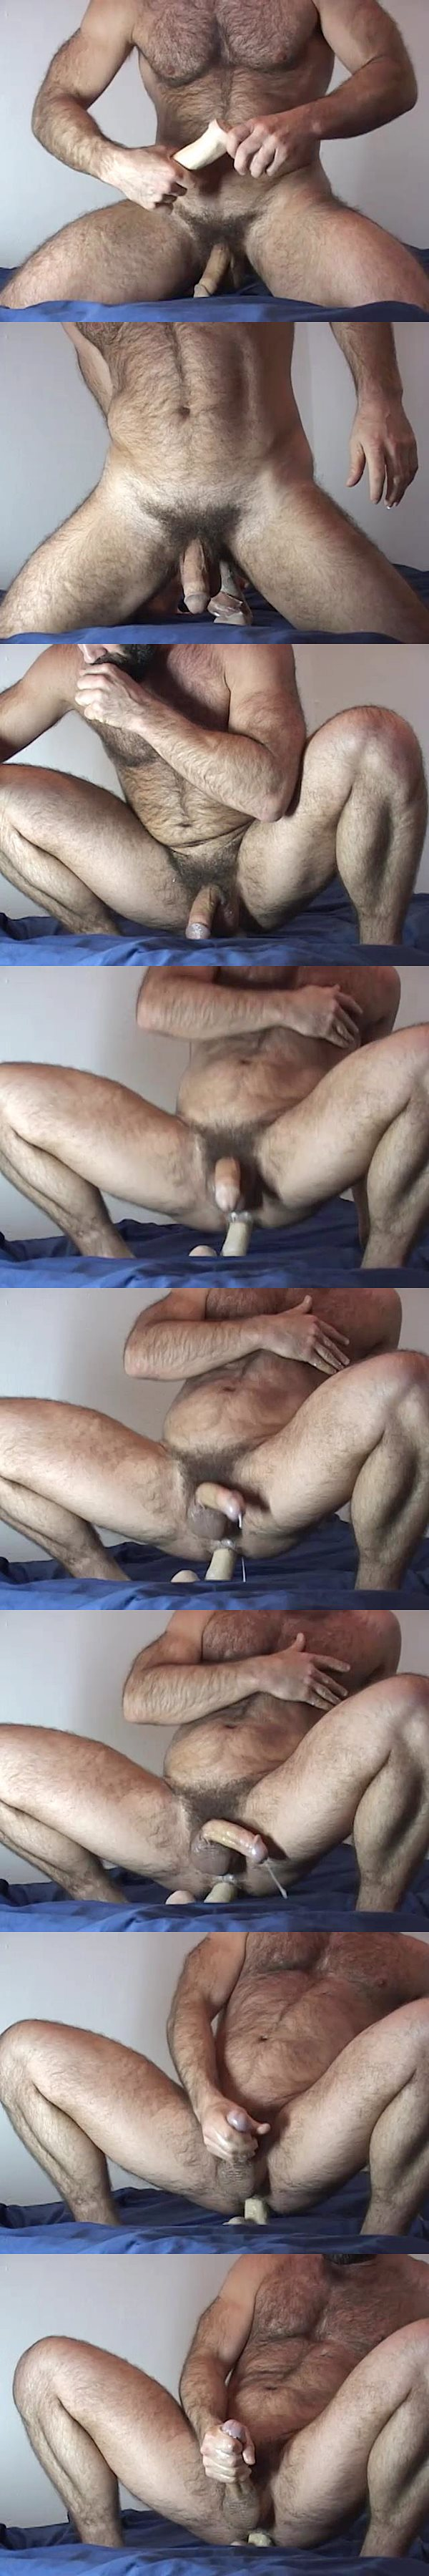 Ray Dragon rides a big dildo until he shoots his hot cum twice at Raydragon